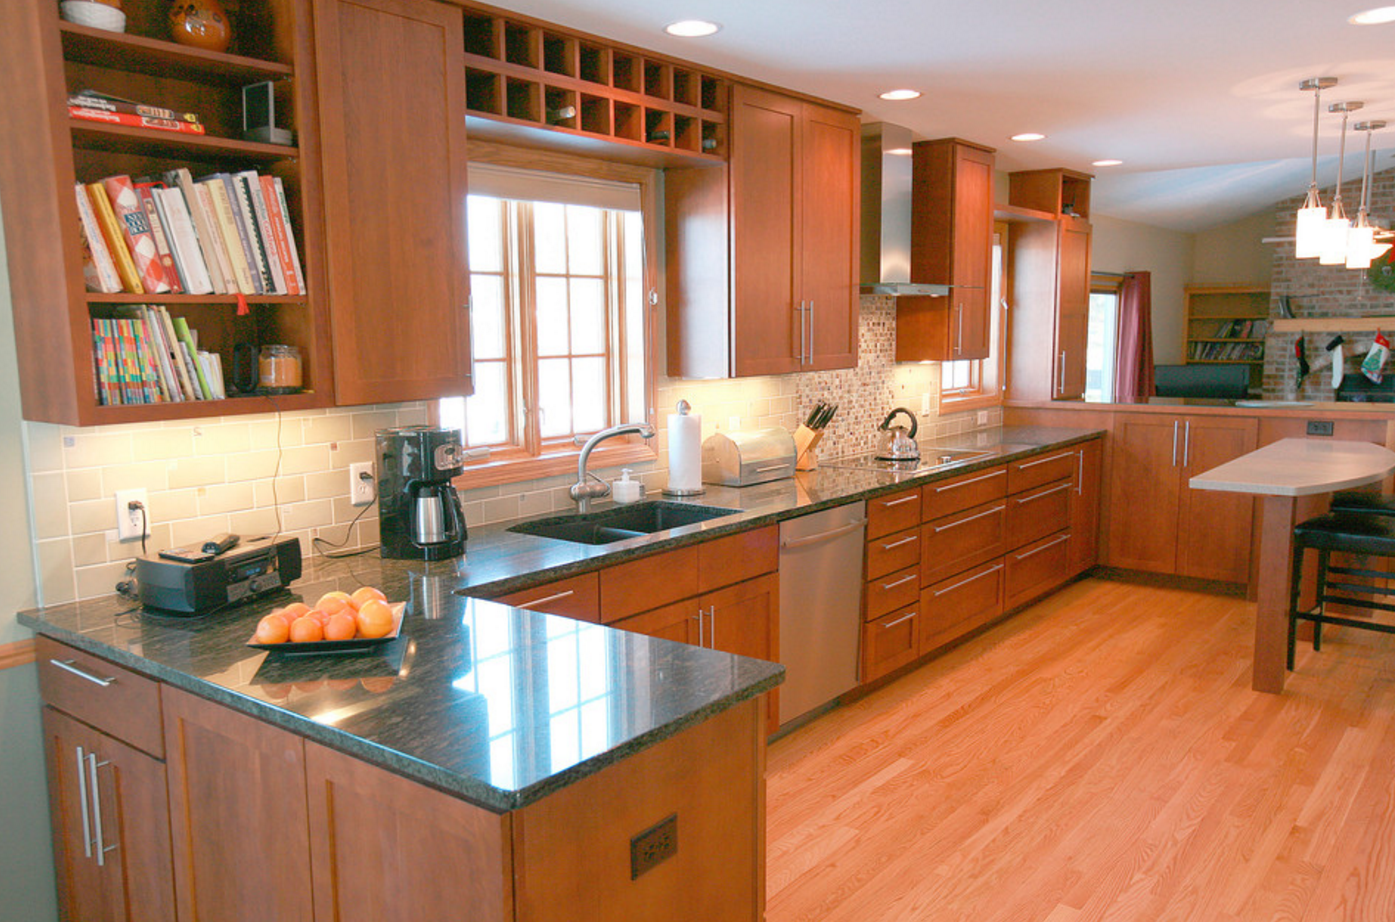 kitchen-remodel-madison-verona-middletonn-monona-wisconsin-7.png